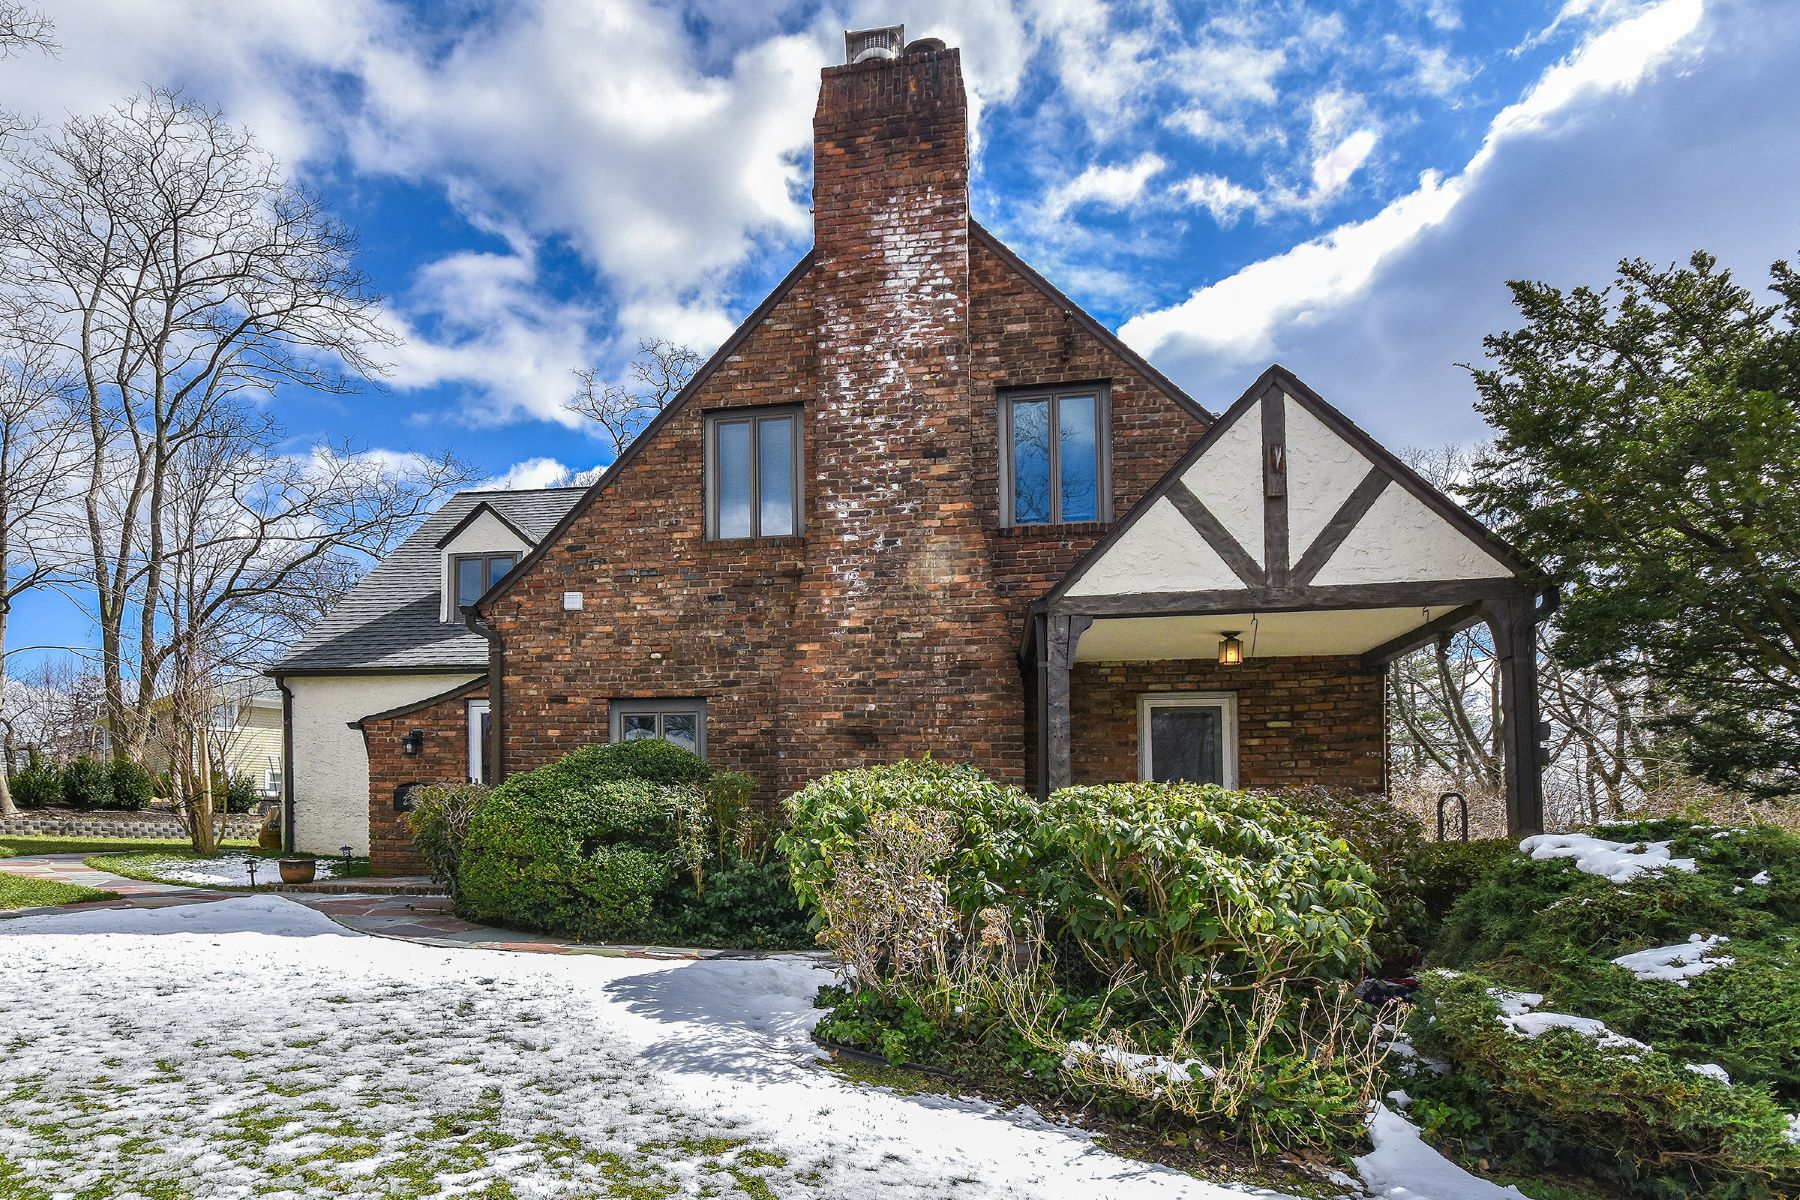 Single Family Home for Active at 2 Briarcliff Dr , Port Washington, NY 11050 2 Briarcliff Dr Port Washington, New York 11050 United States